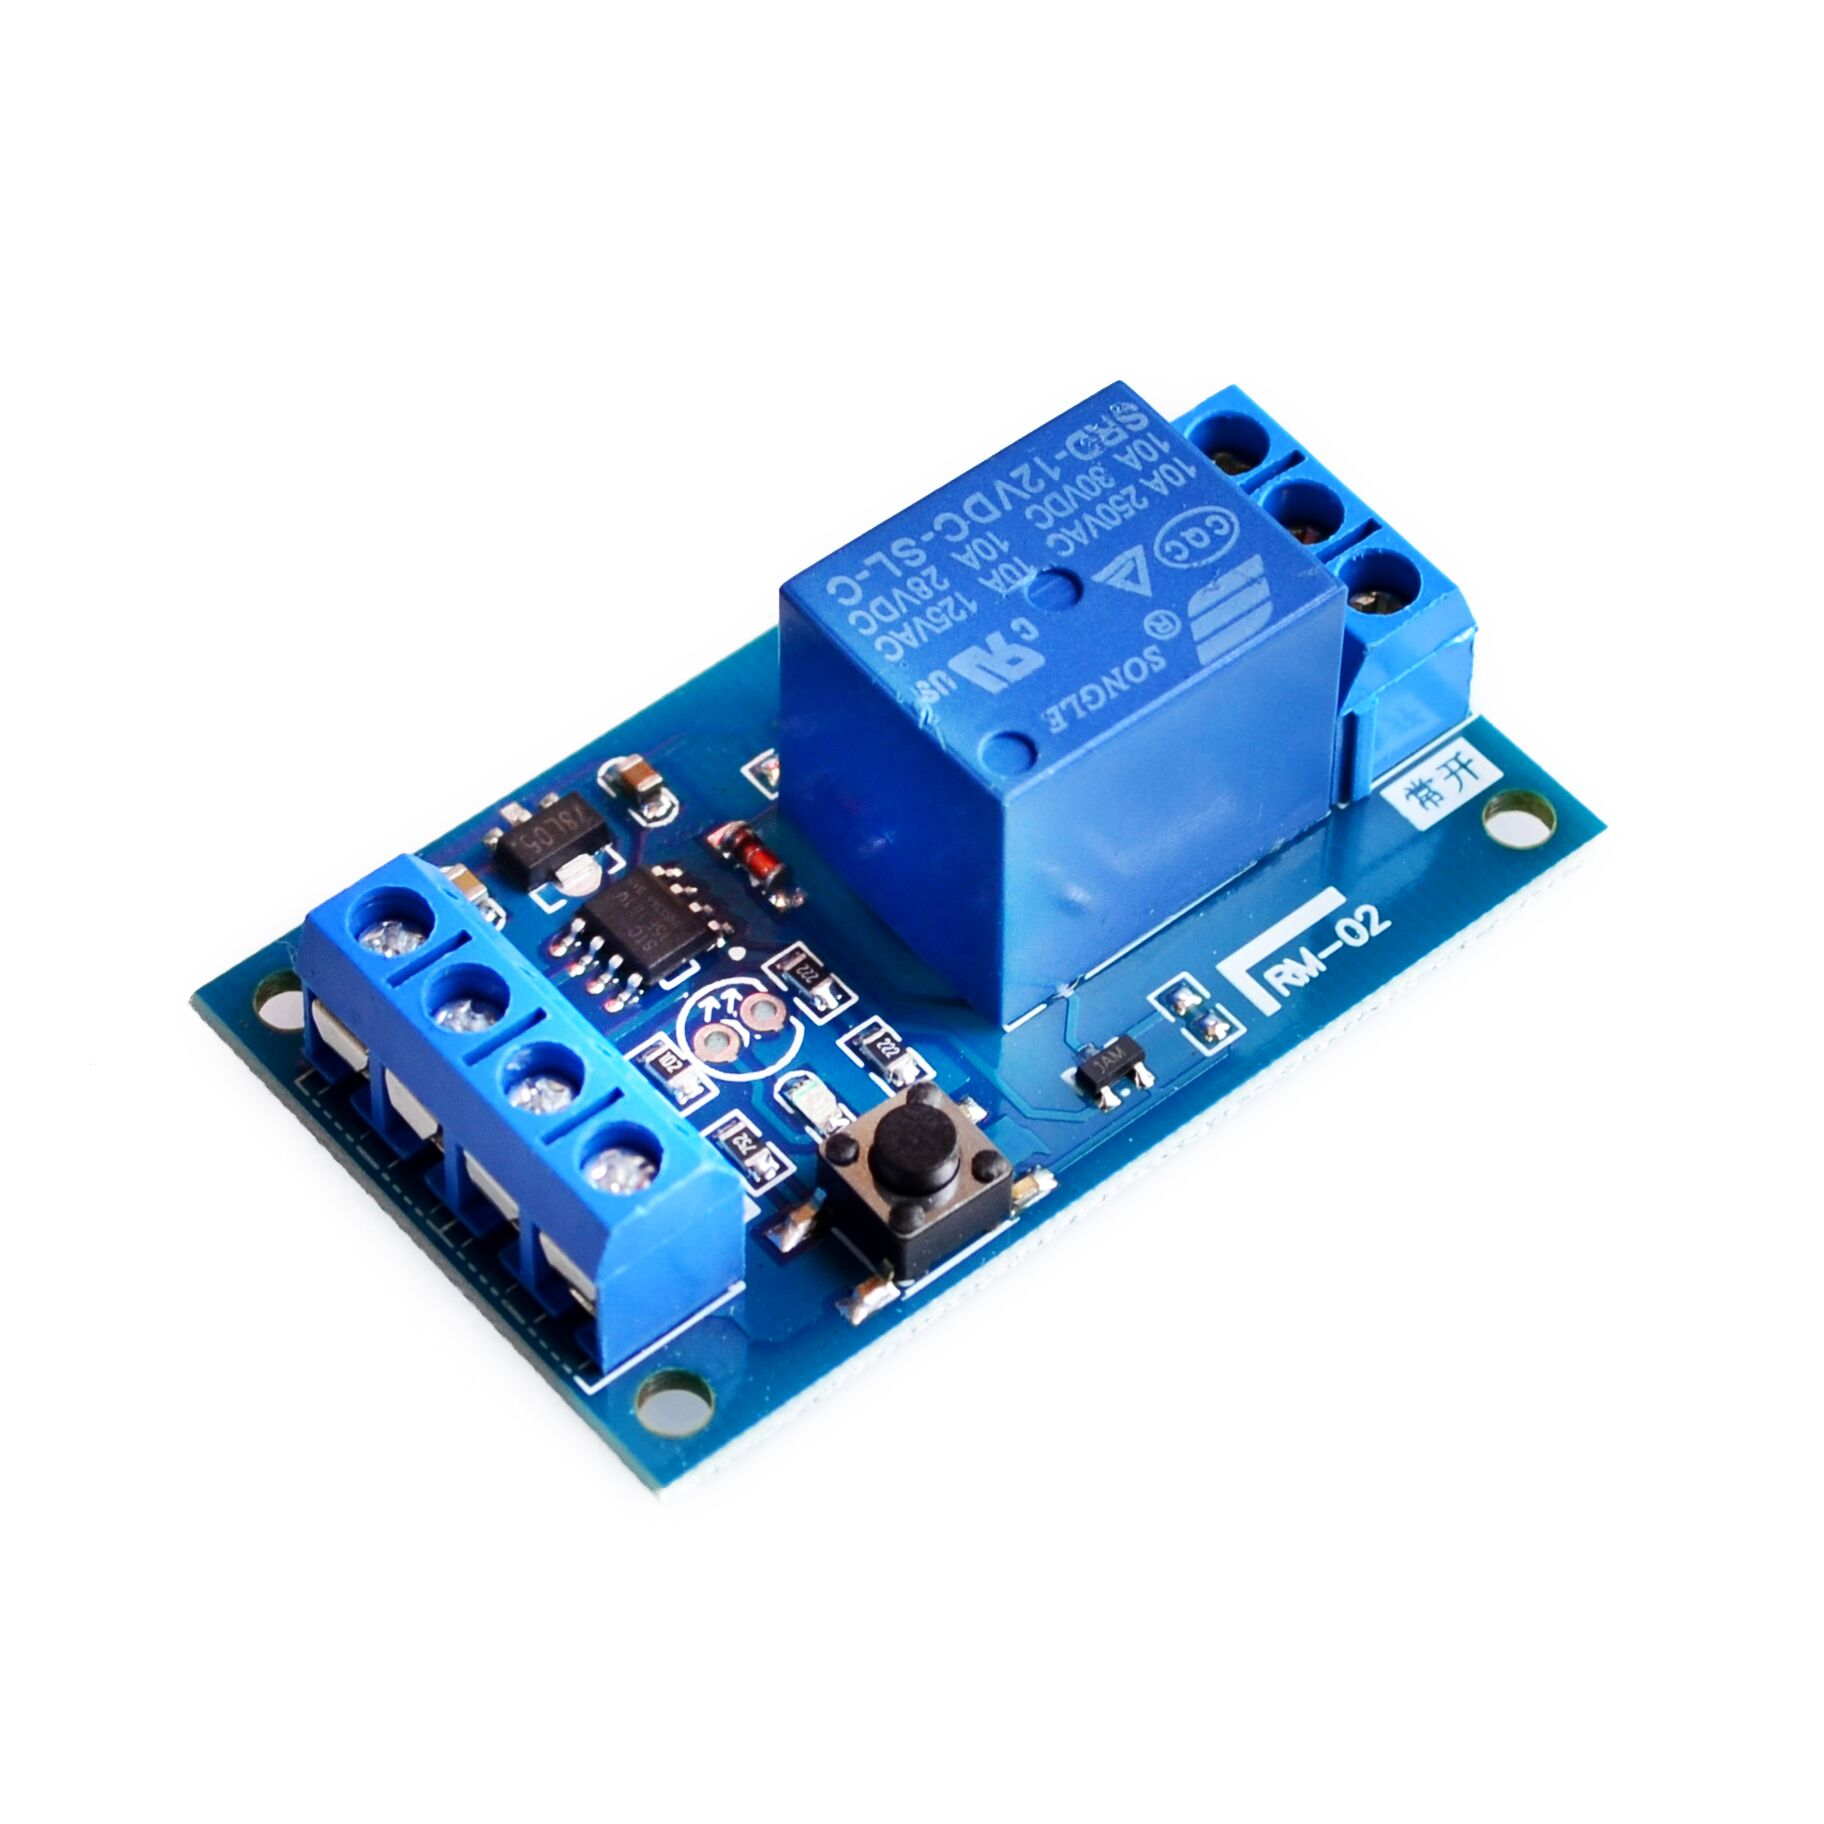 12v bond bistable relay module car modification switch one key start and stop the self locking Phoenix Contact Bistable Relay Bistable Relay Circuit